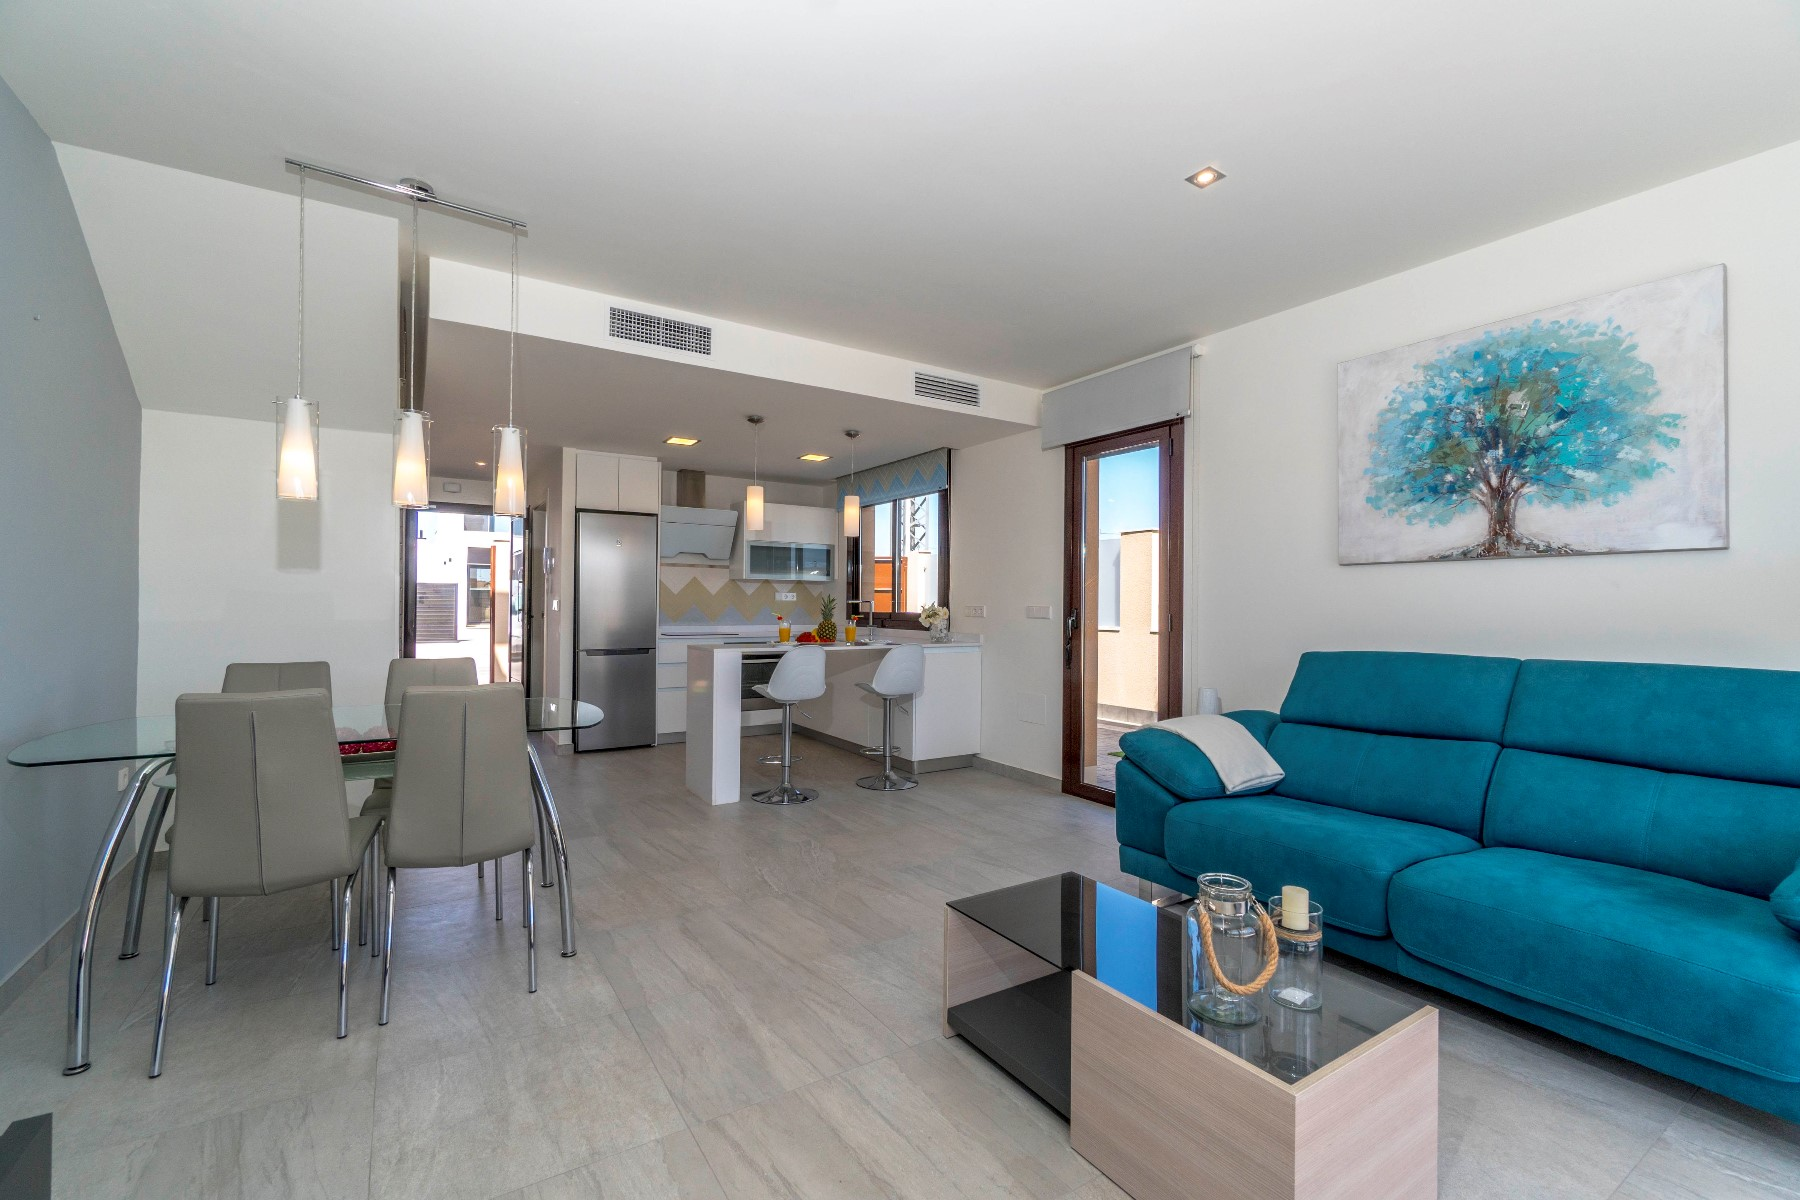 3 bed Townhouse in San Pedro del Pinatar image 1